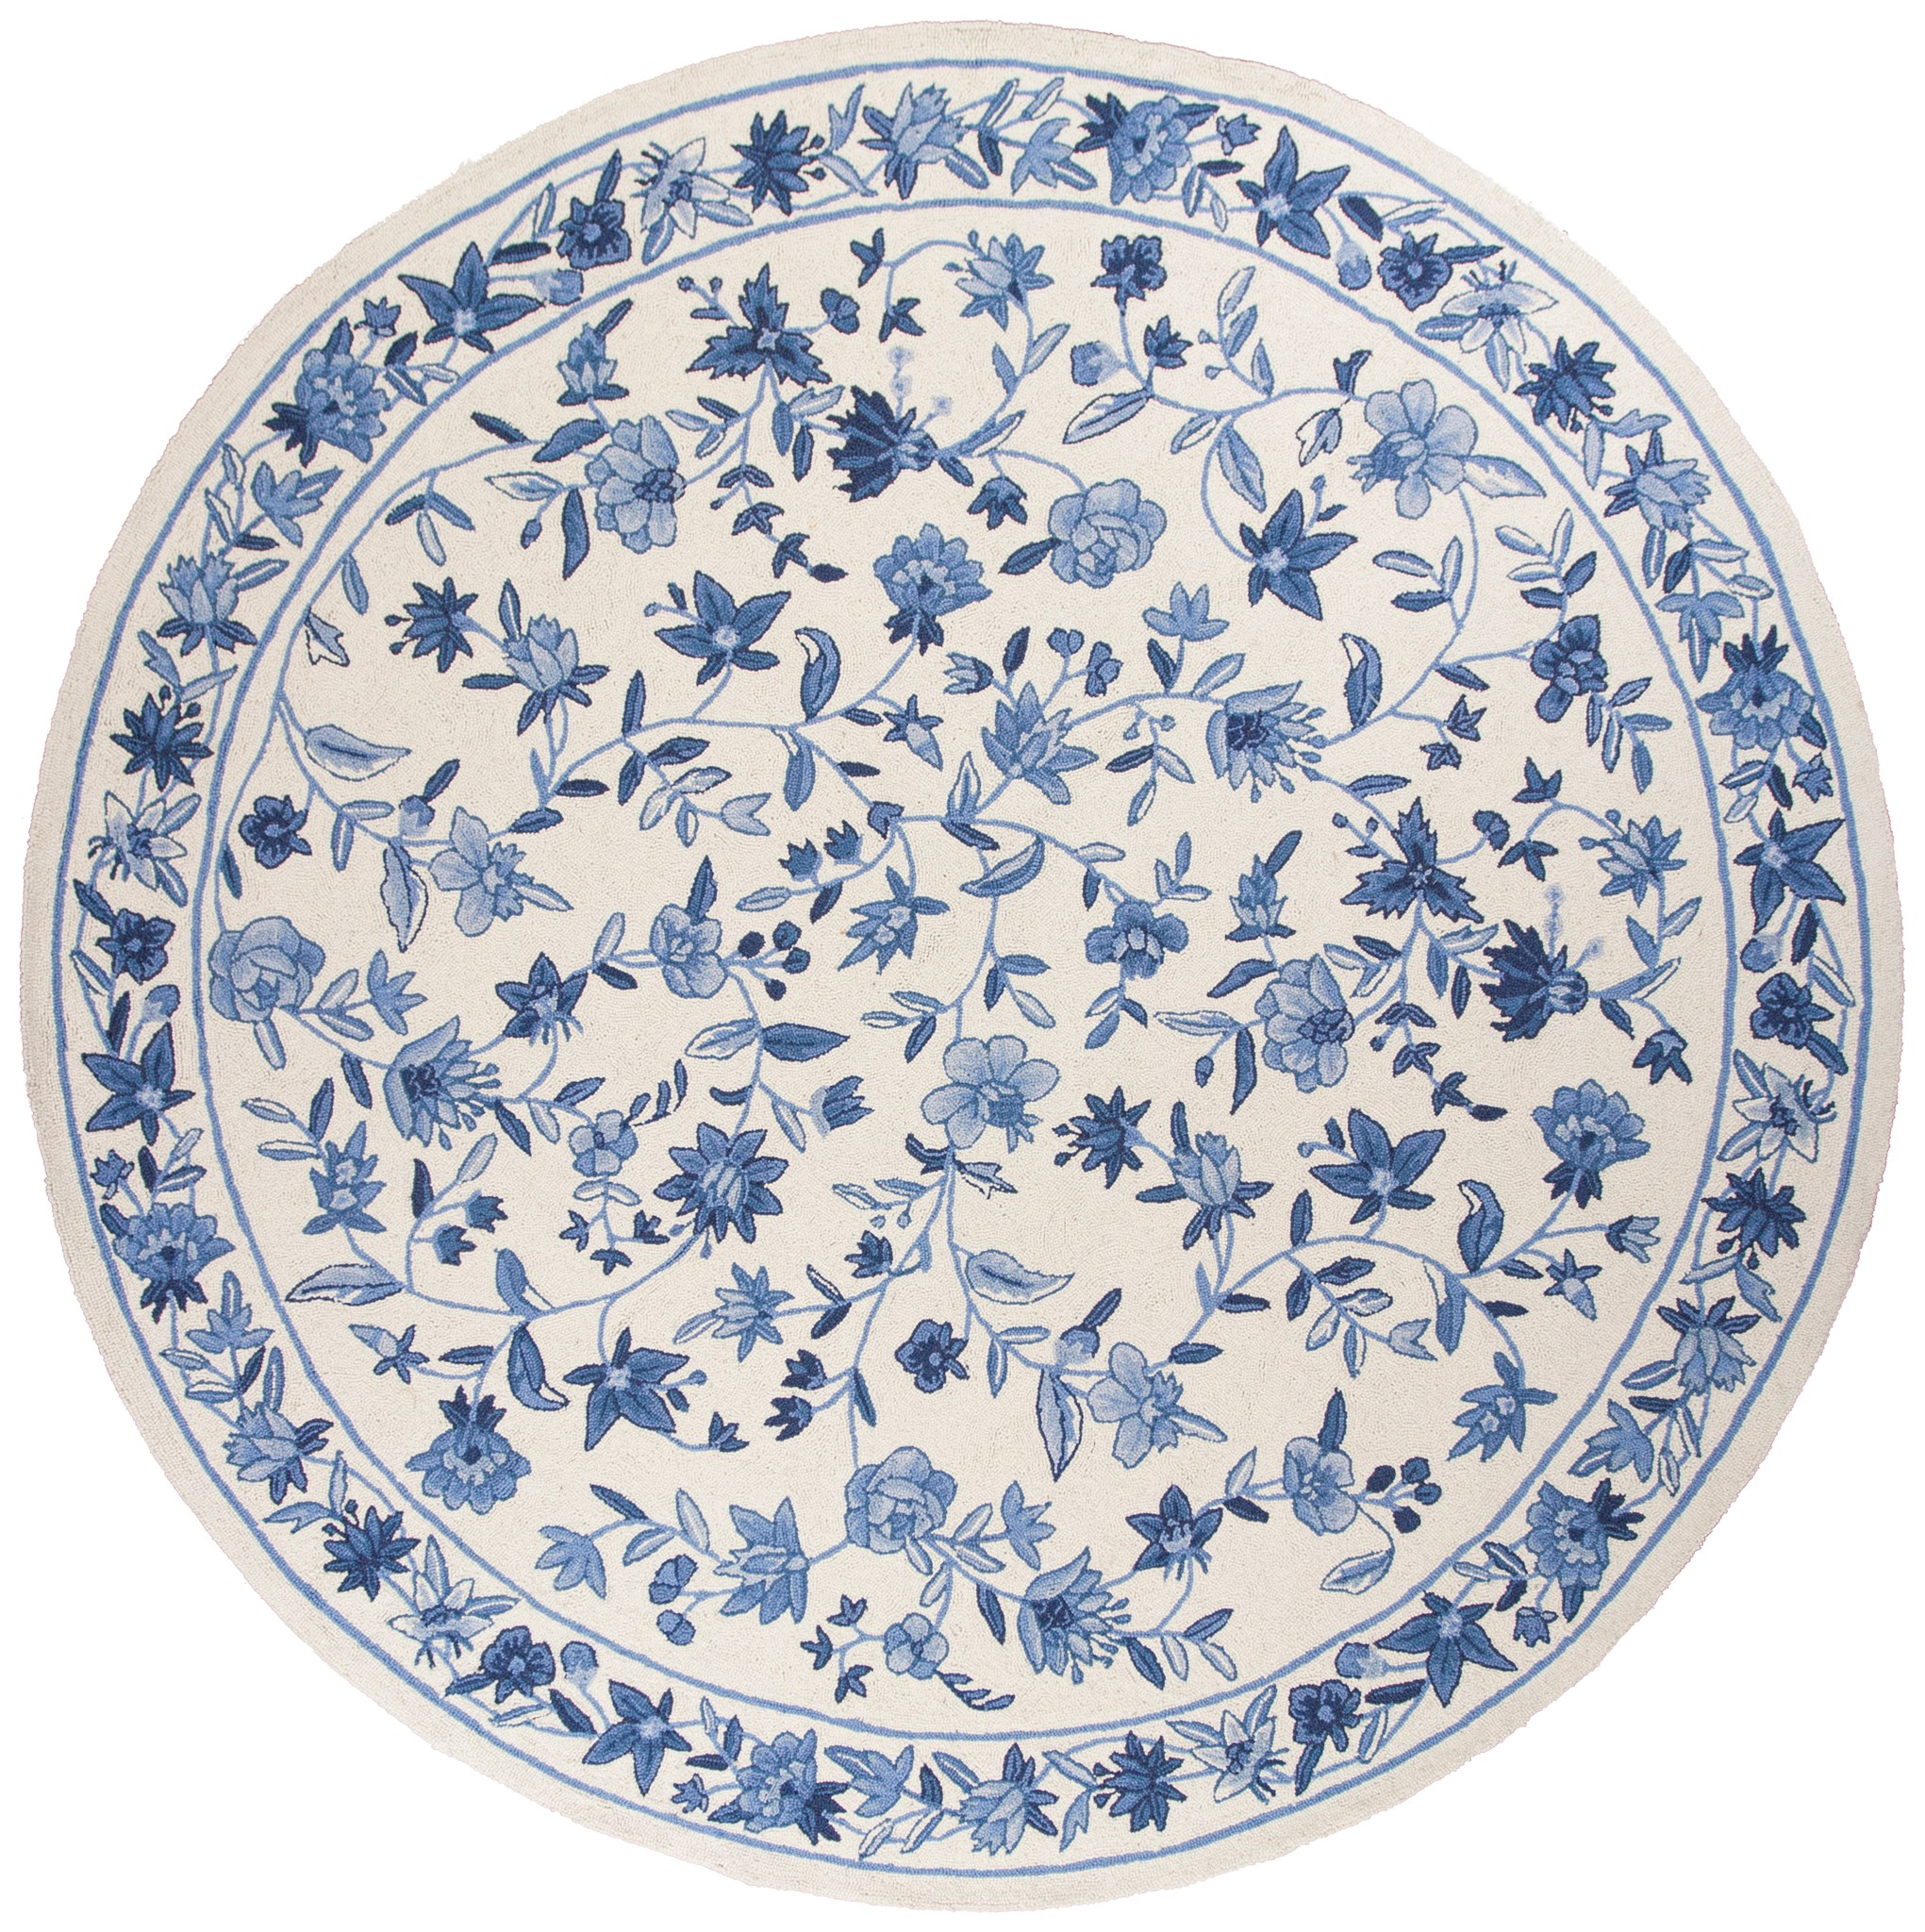 Colonial 1727 Ivory/Blue Floral